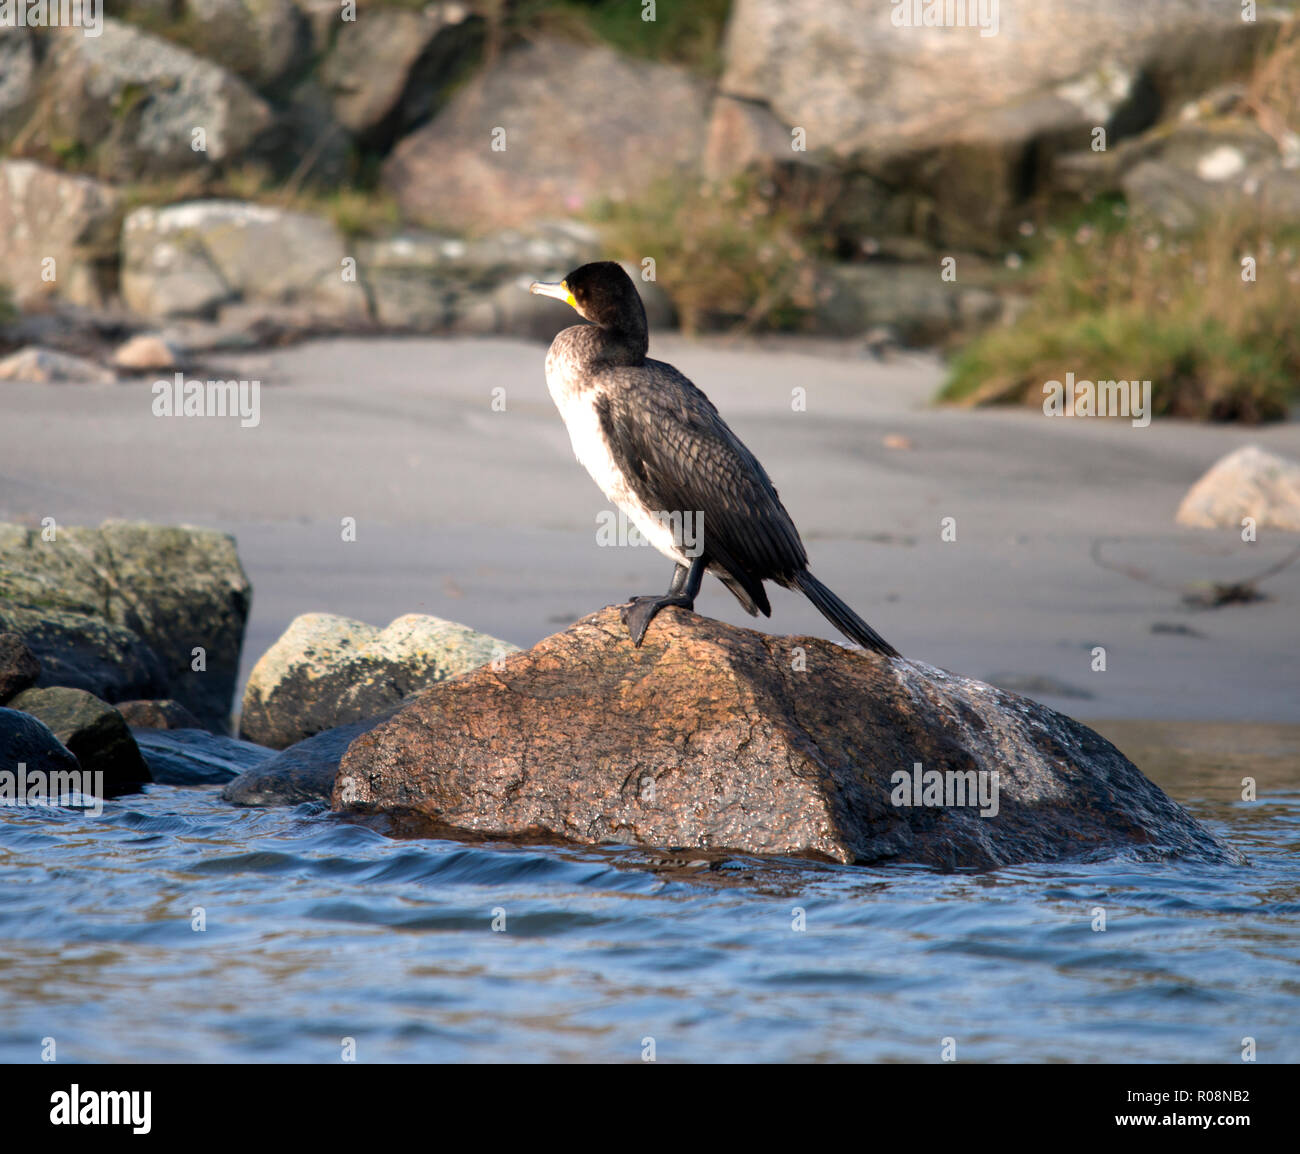 Bird, Birds, Aves, endothermic, vertebrates, feathers, toothless, beaked, jaws, eggs, metabolic, tetrapods, wings, fly, penguins, waterbirds, Swans, A - Stock Image